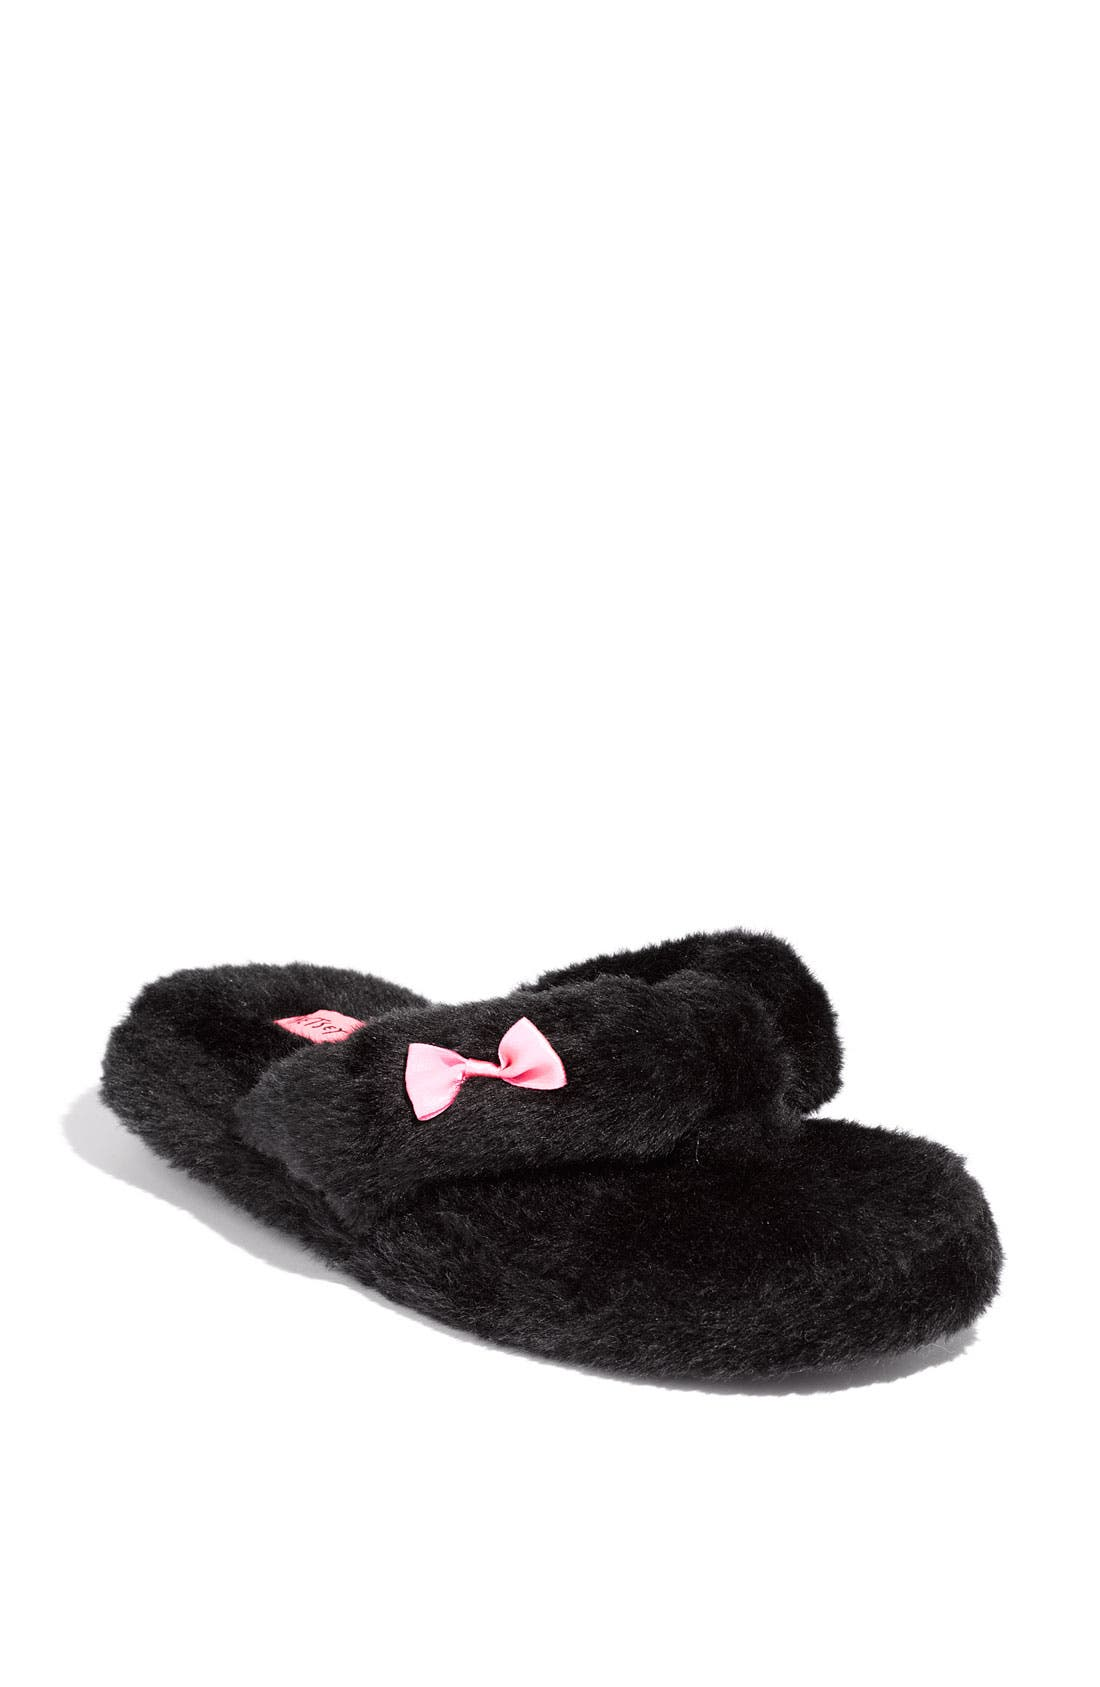 Main Image - Betsey Johnson Flip-Flop Slippers